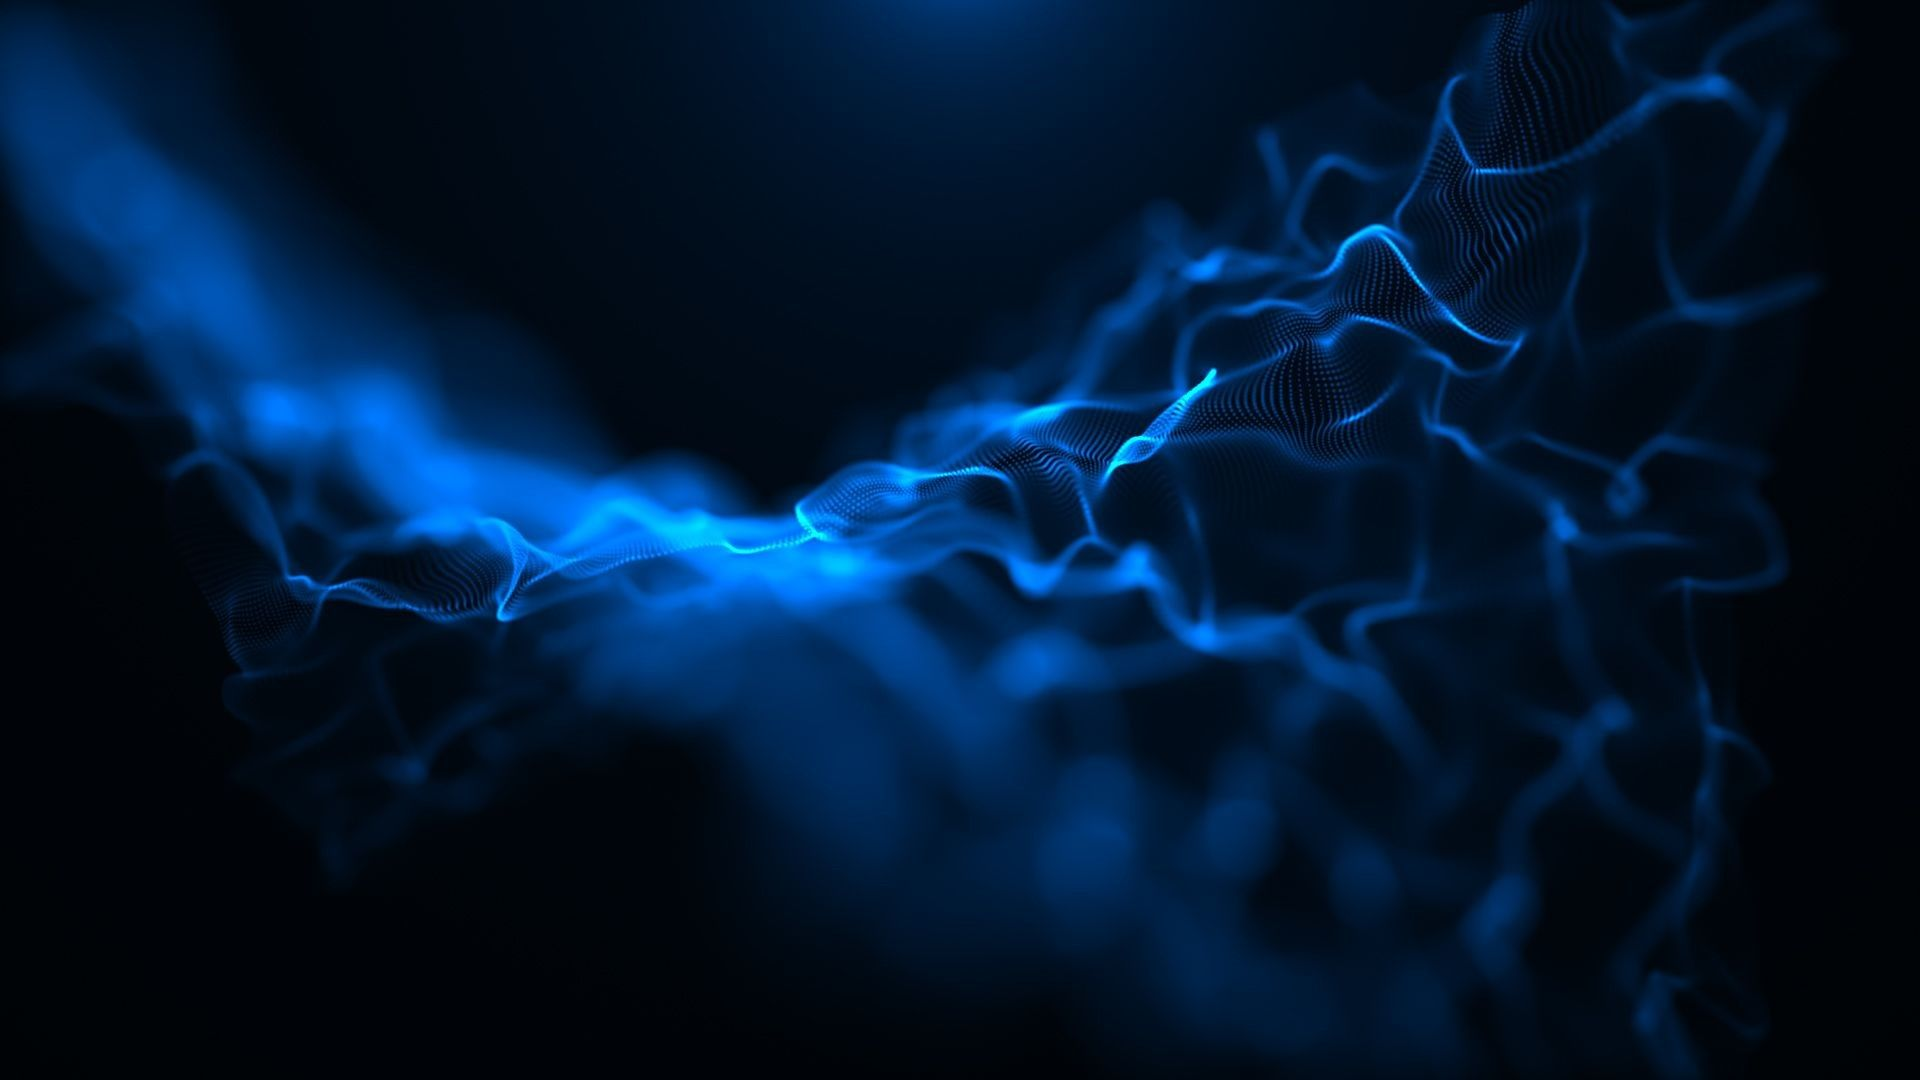 1920x1080 Abstract Blue Form Desktop Wallpaper Nr 62180 By Emil1213 Wallpaper Biru Tua Wallpaper Iphone Biru Gambar